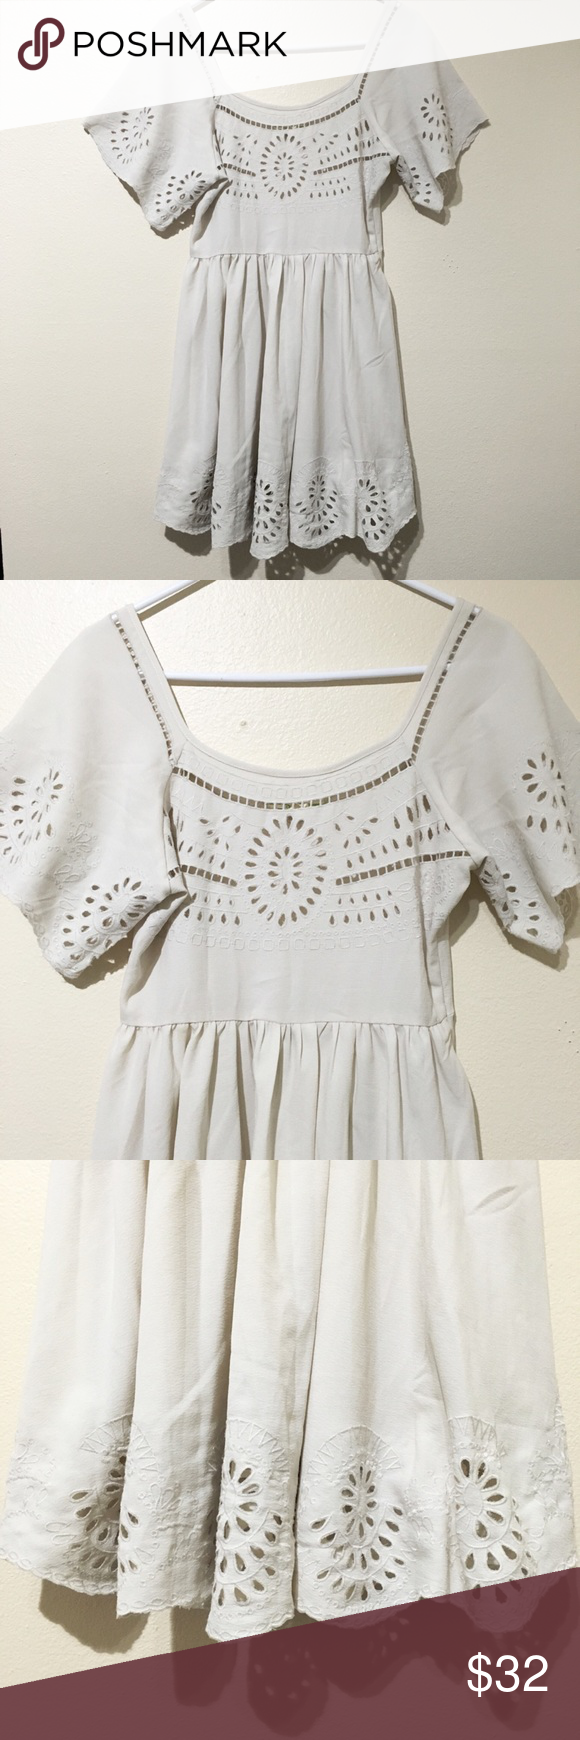 Staring at Stars Beige Floral Eyelet Peasant Dress From urban outfitters size 4 worn once Urban Outfitters Dresses